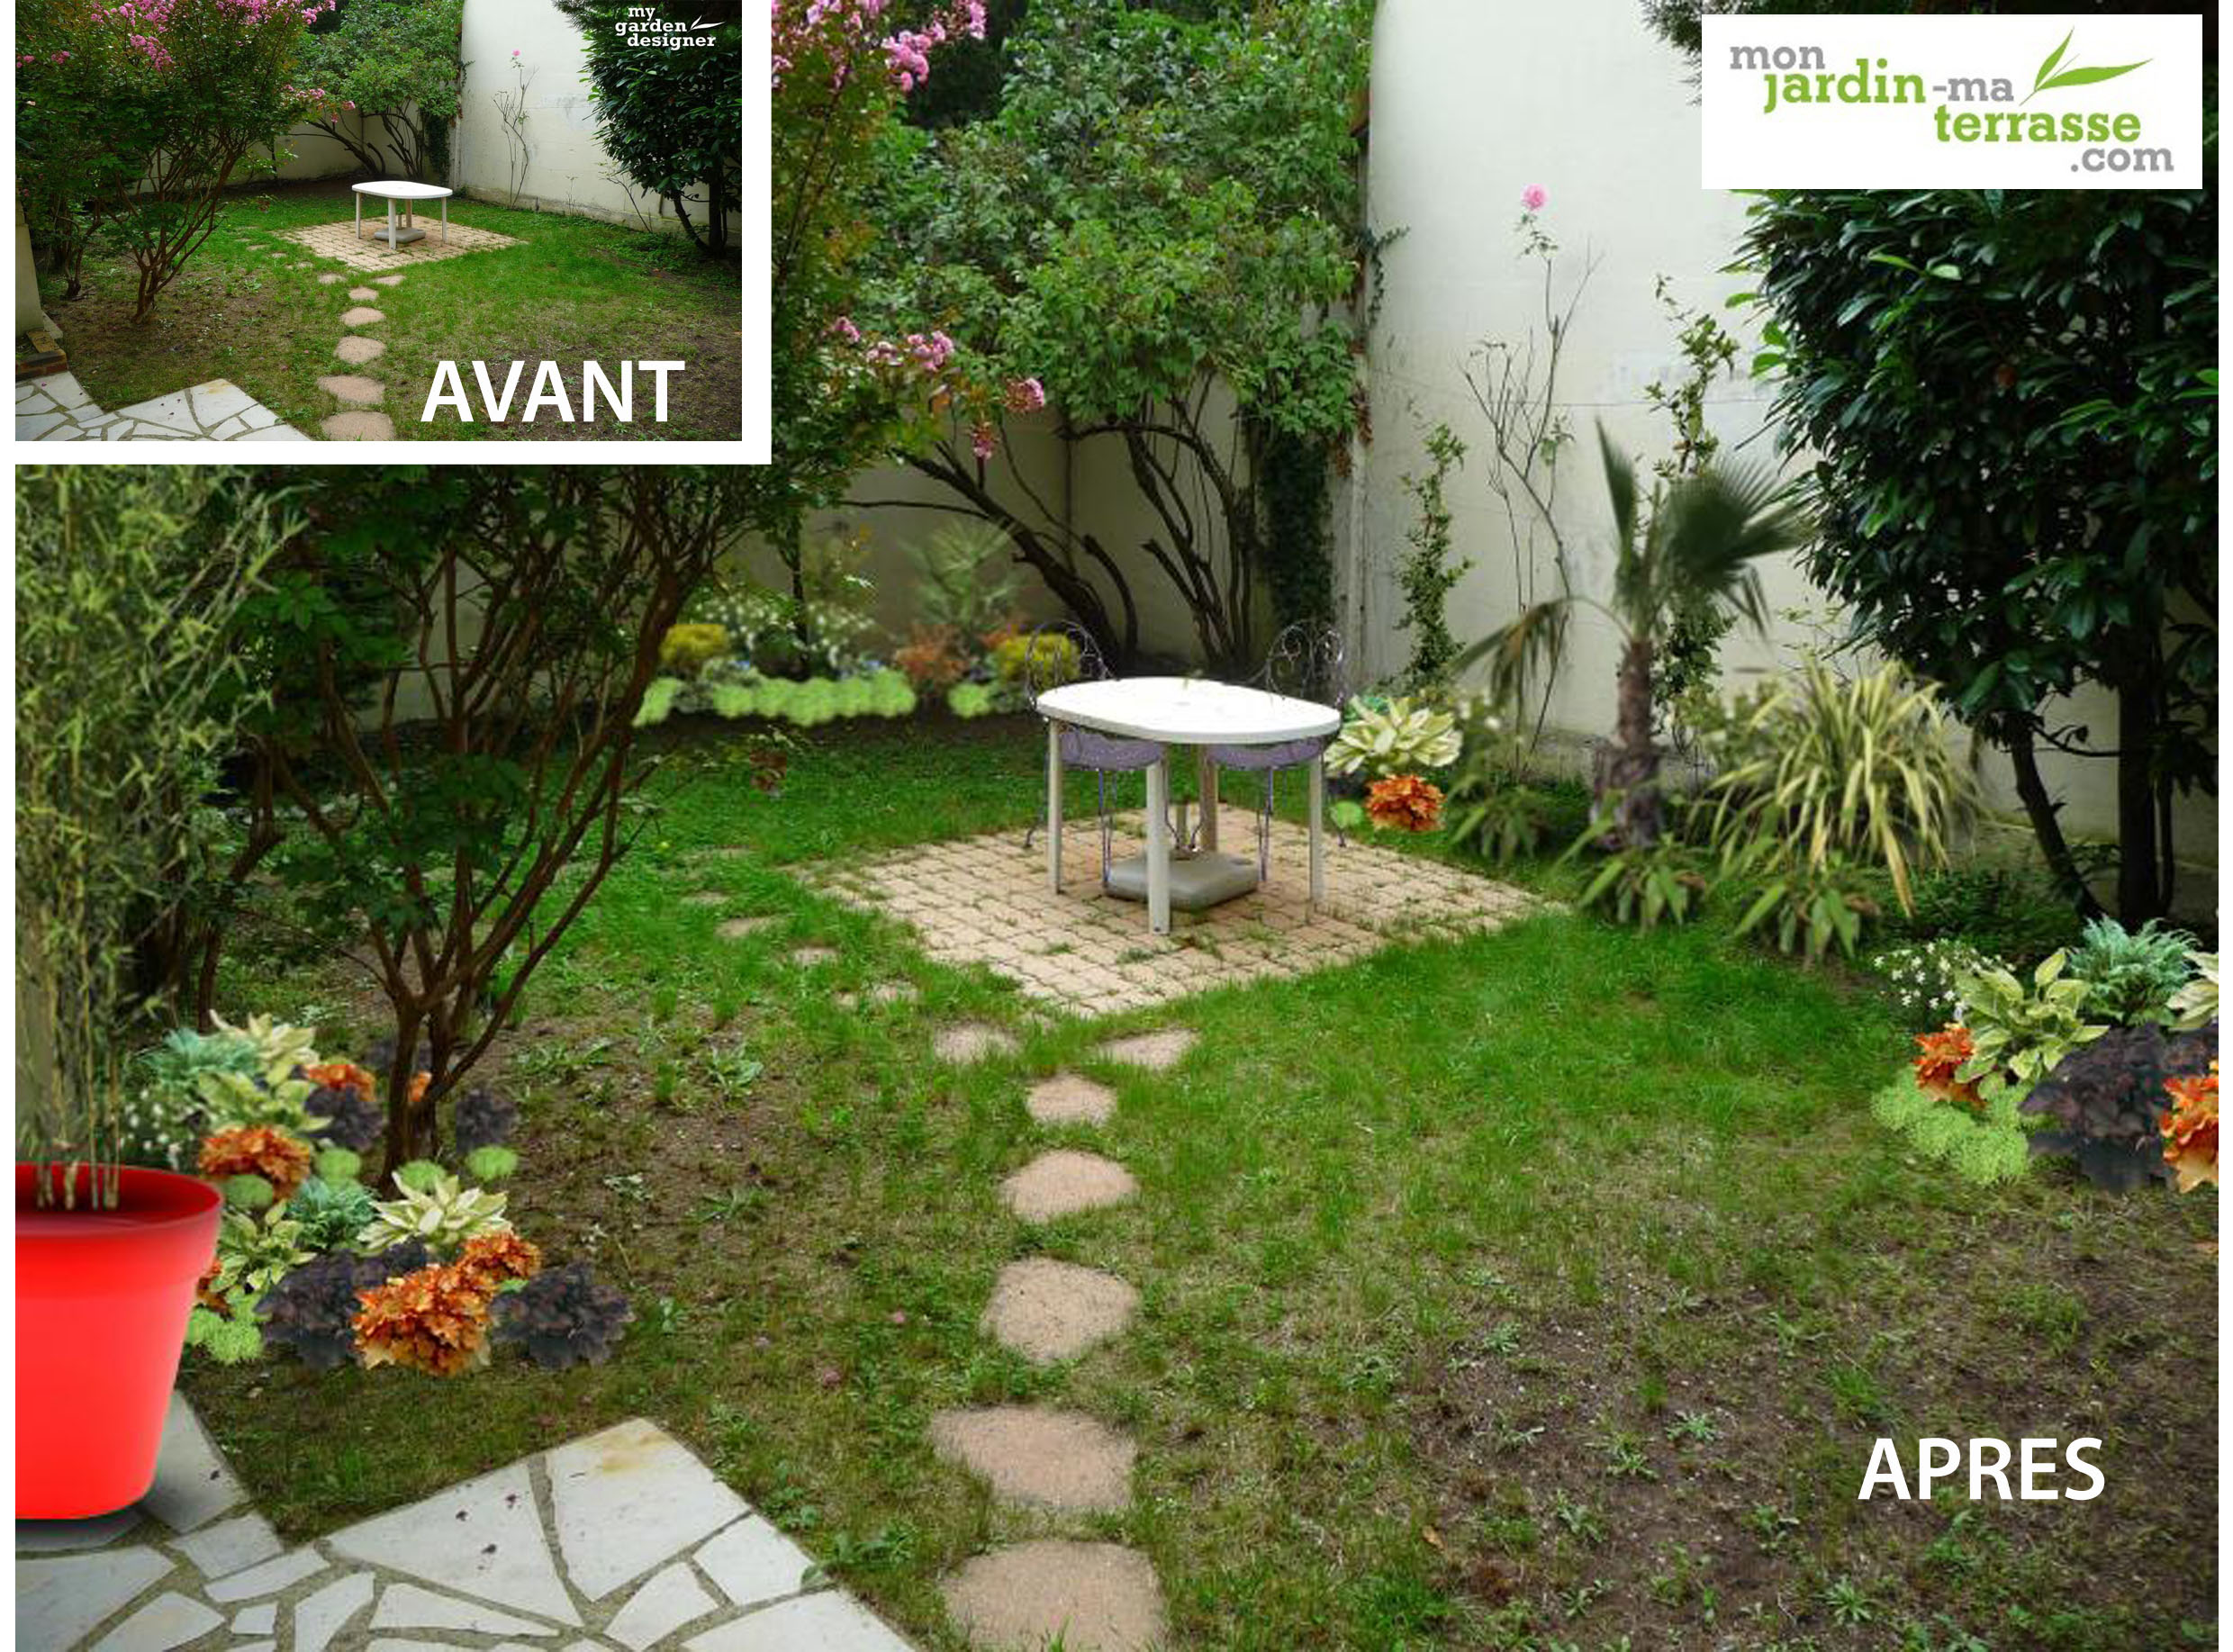 Am nager un jardin l ombre d immeubles monjardin for Amenager son jardin exterieur